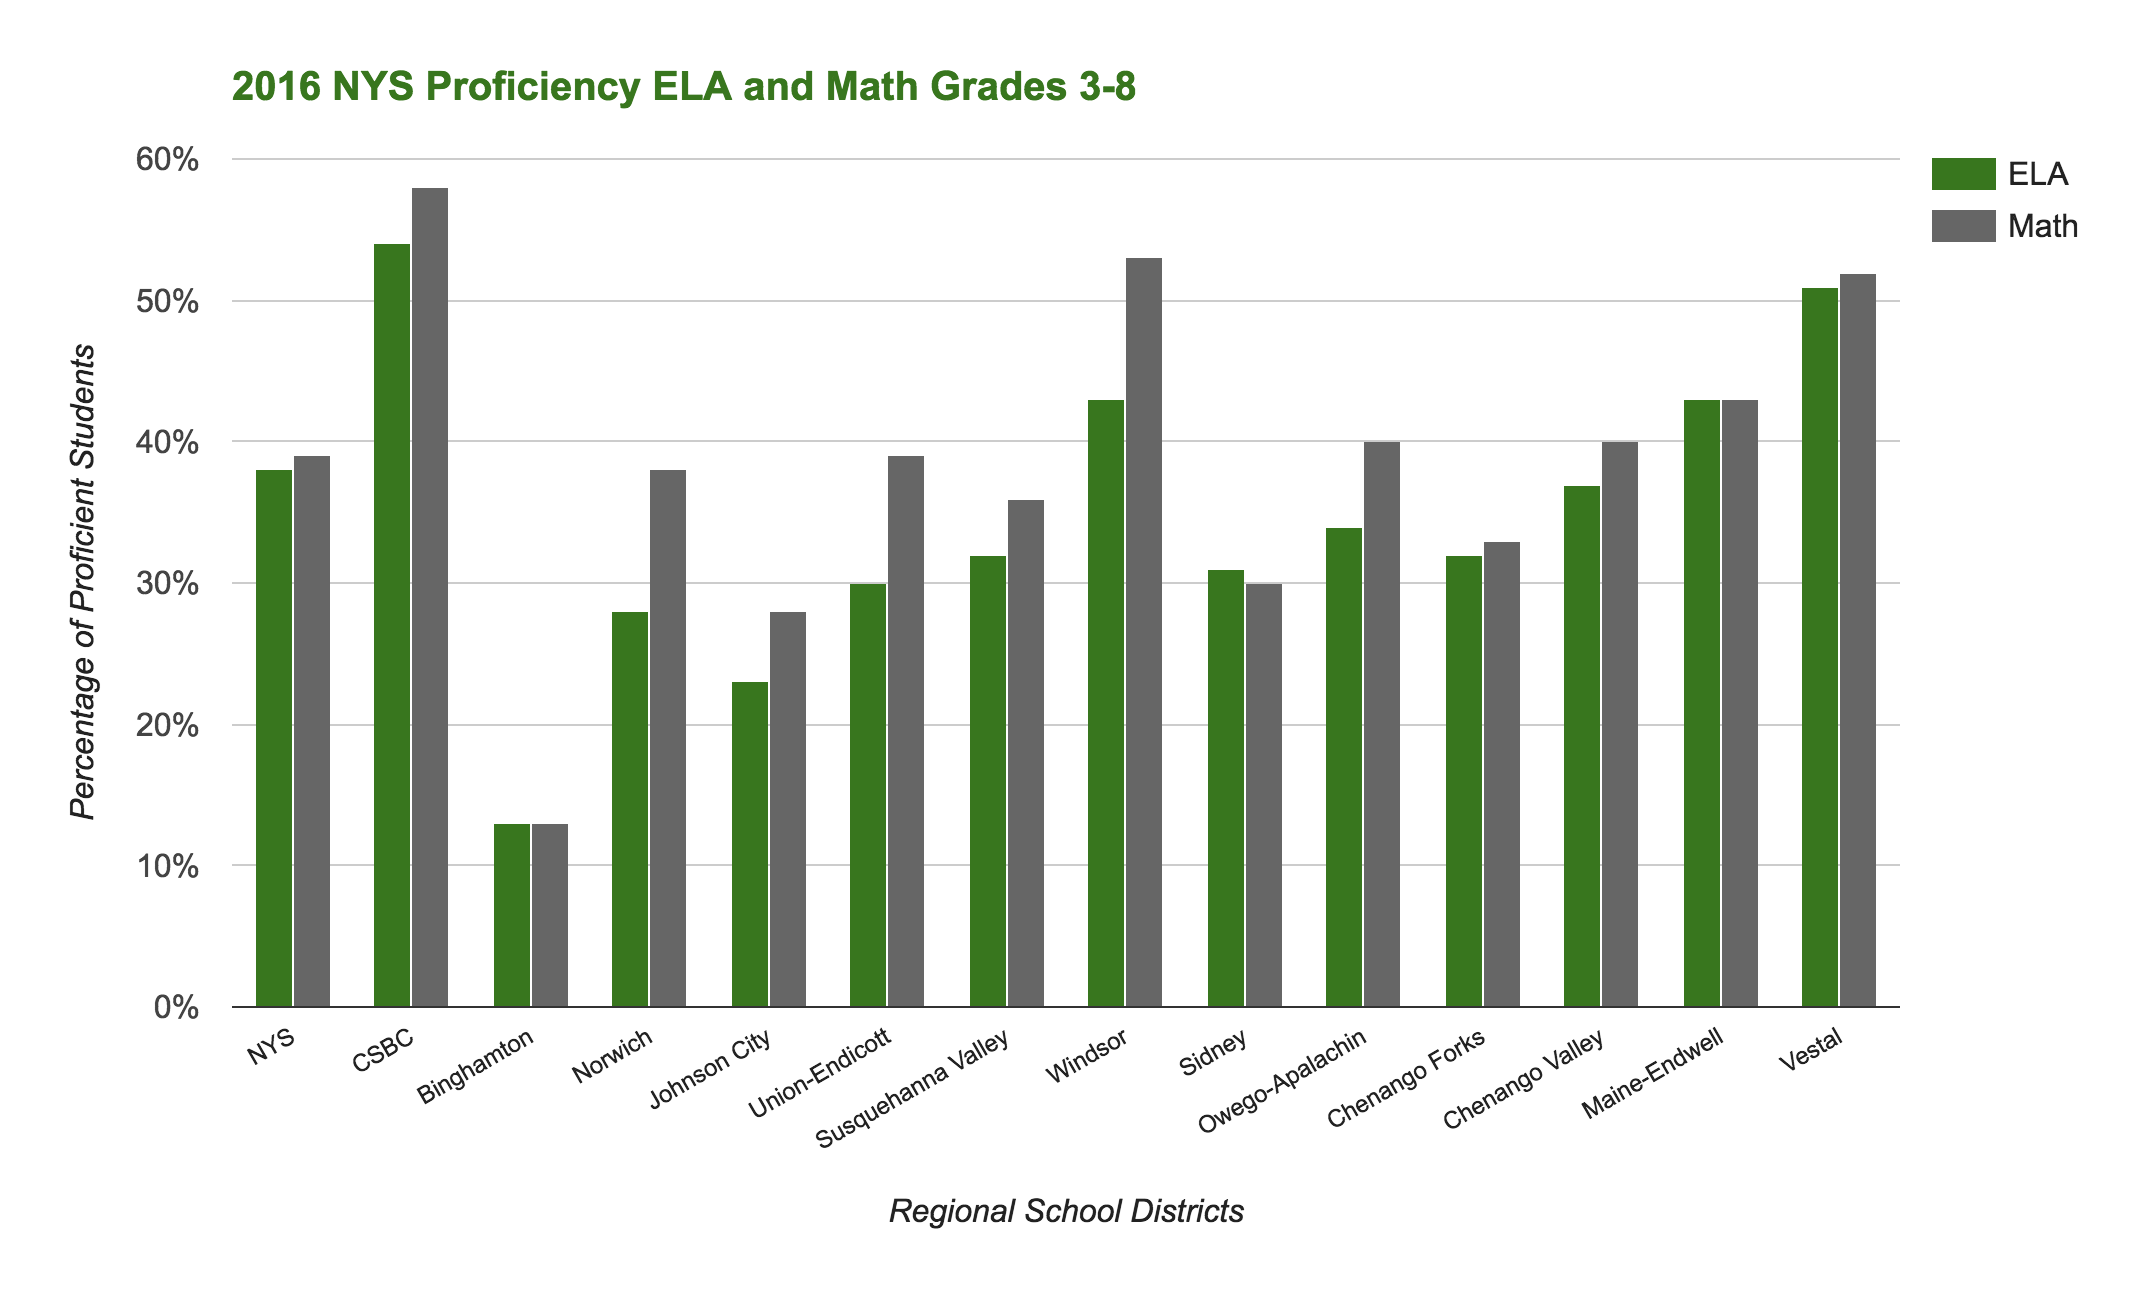 2016 New York State Proficiency ELA and Math Grades 3-8 Result ...